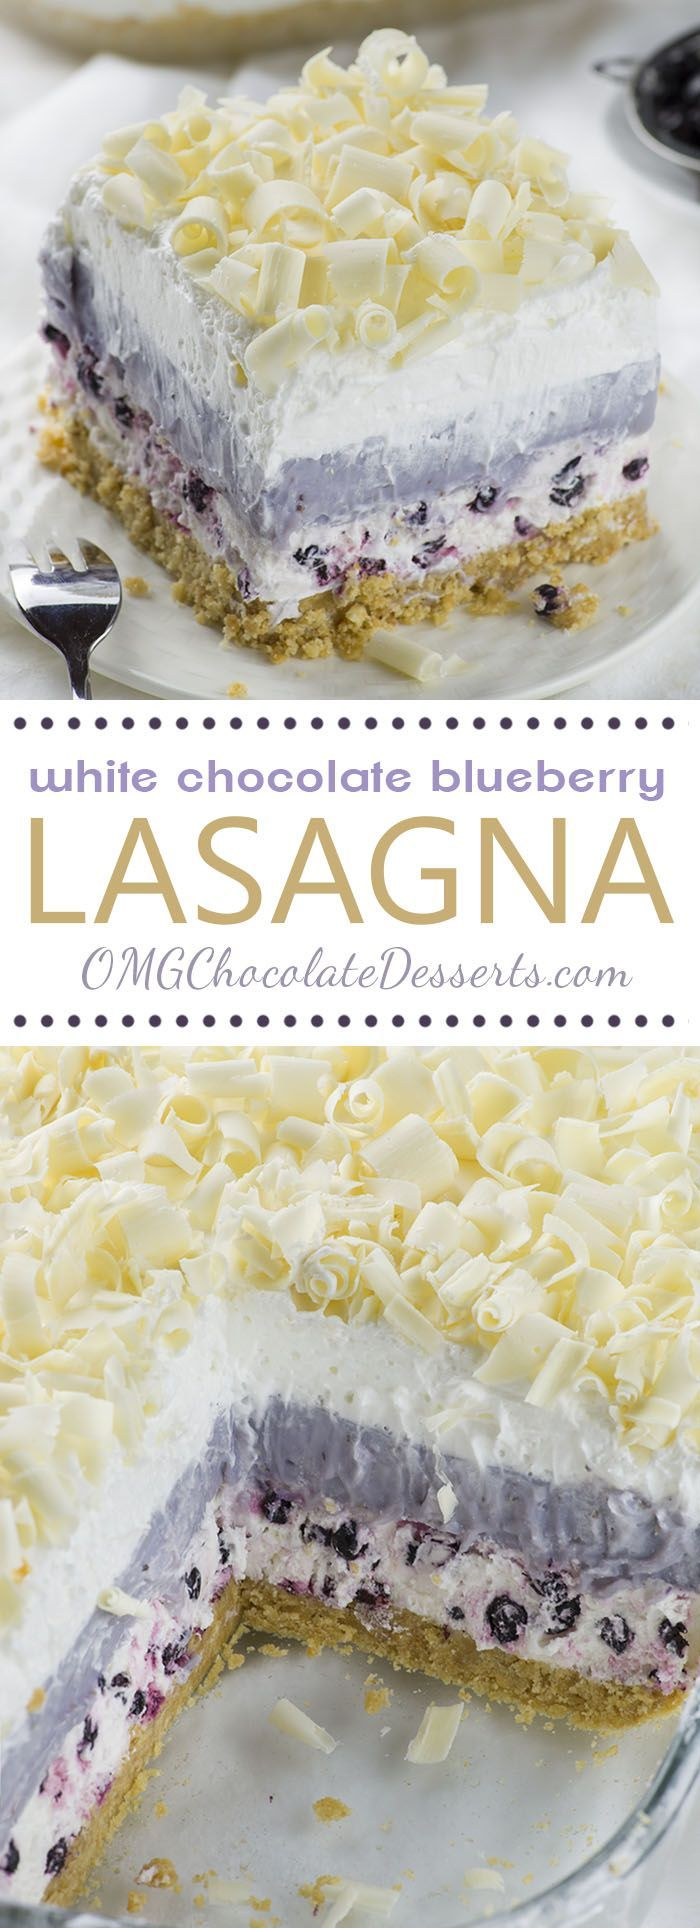 White Chocolate Blueberry Lasagna is perfect summer dessert recipe- light, easy…